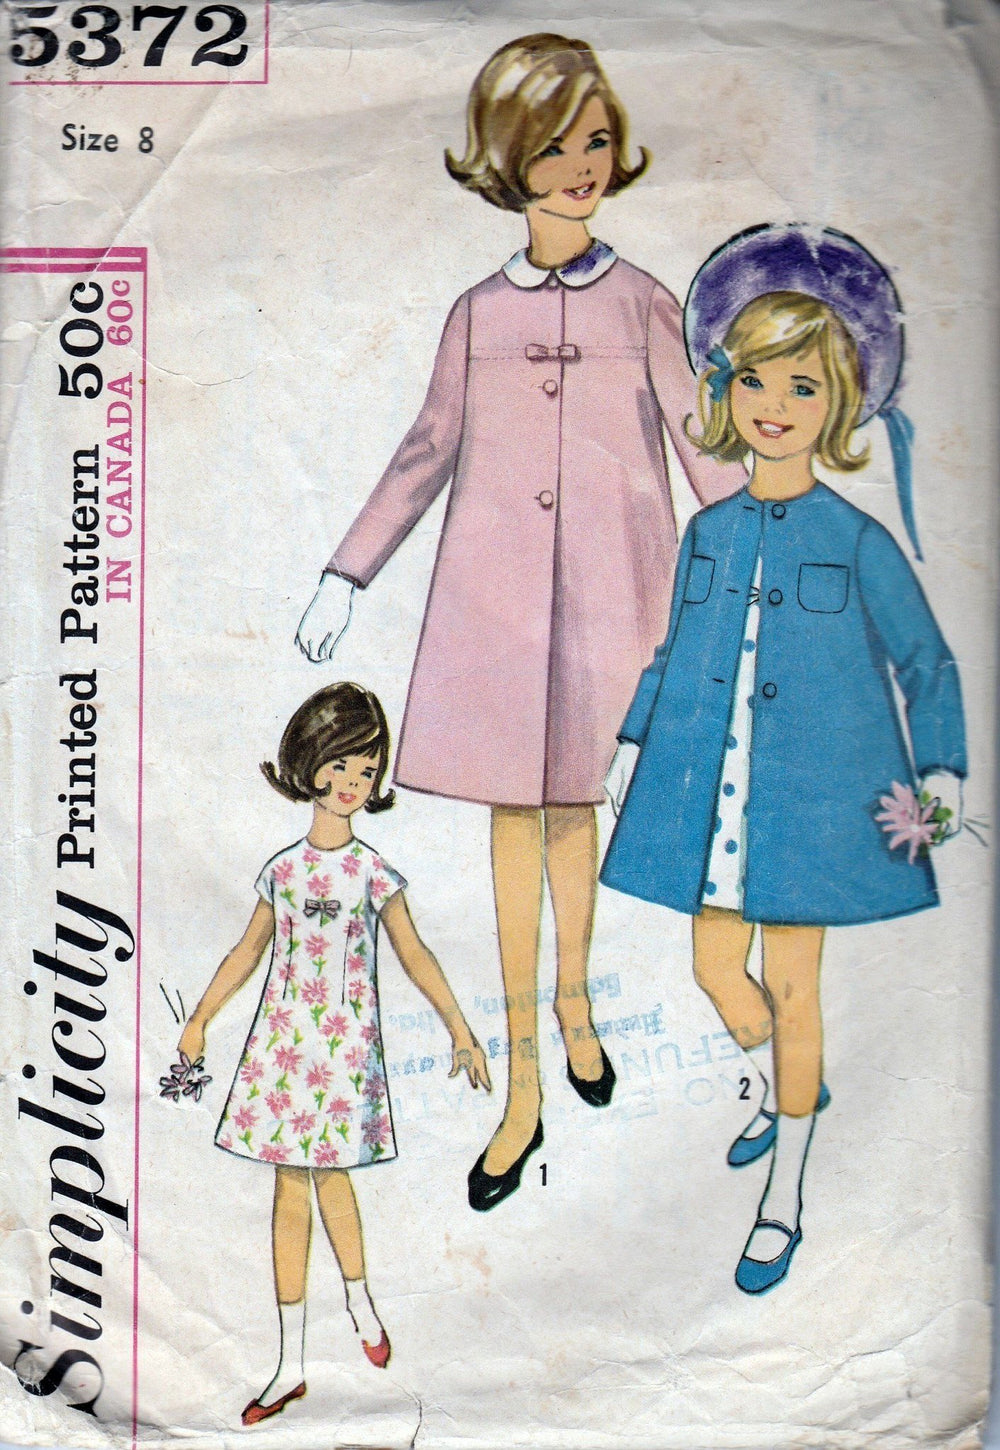 Simplicity 5372 Vintage 1960's Sewing Pattern Girls A-Line Dress Front Button Coat Detachable Collar - VintageStitching - Vintage Sewing Patterns